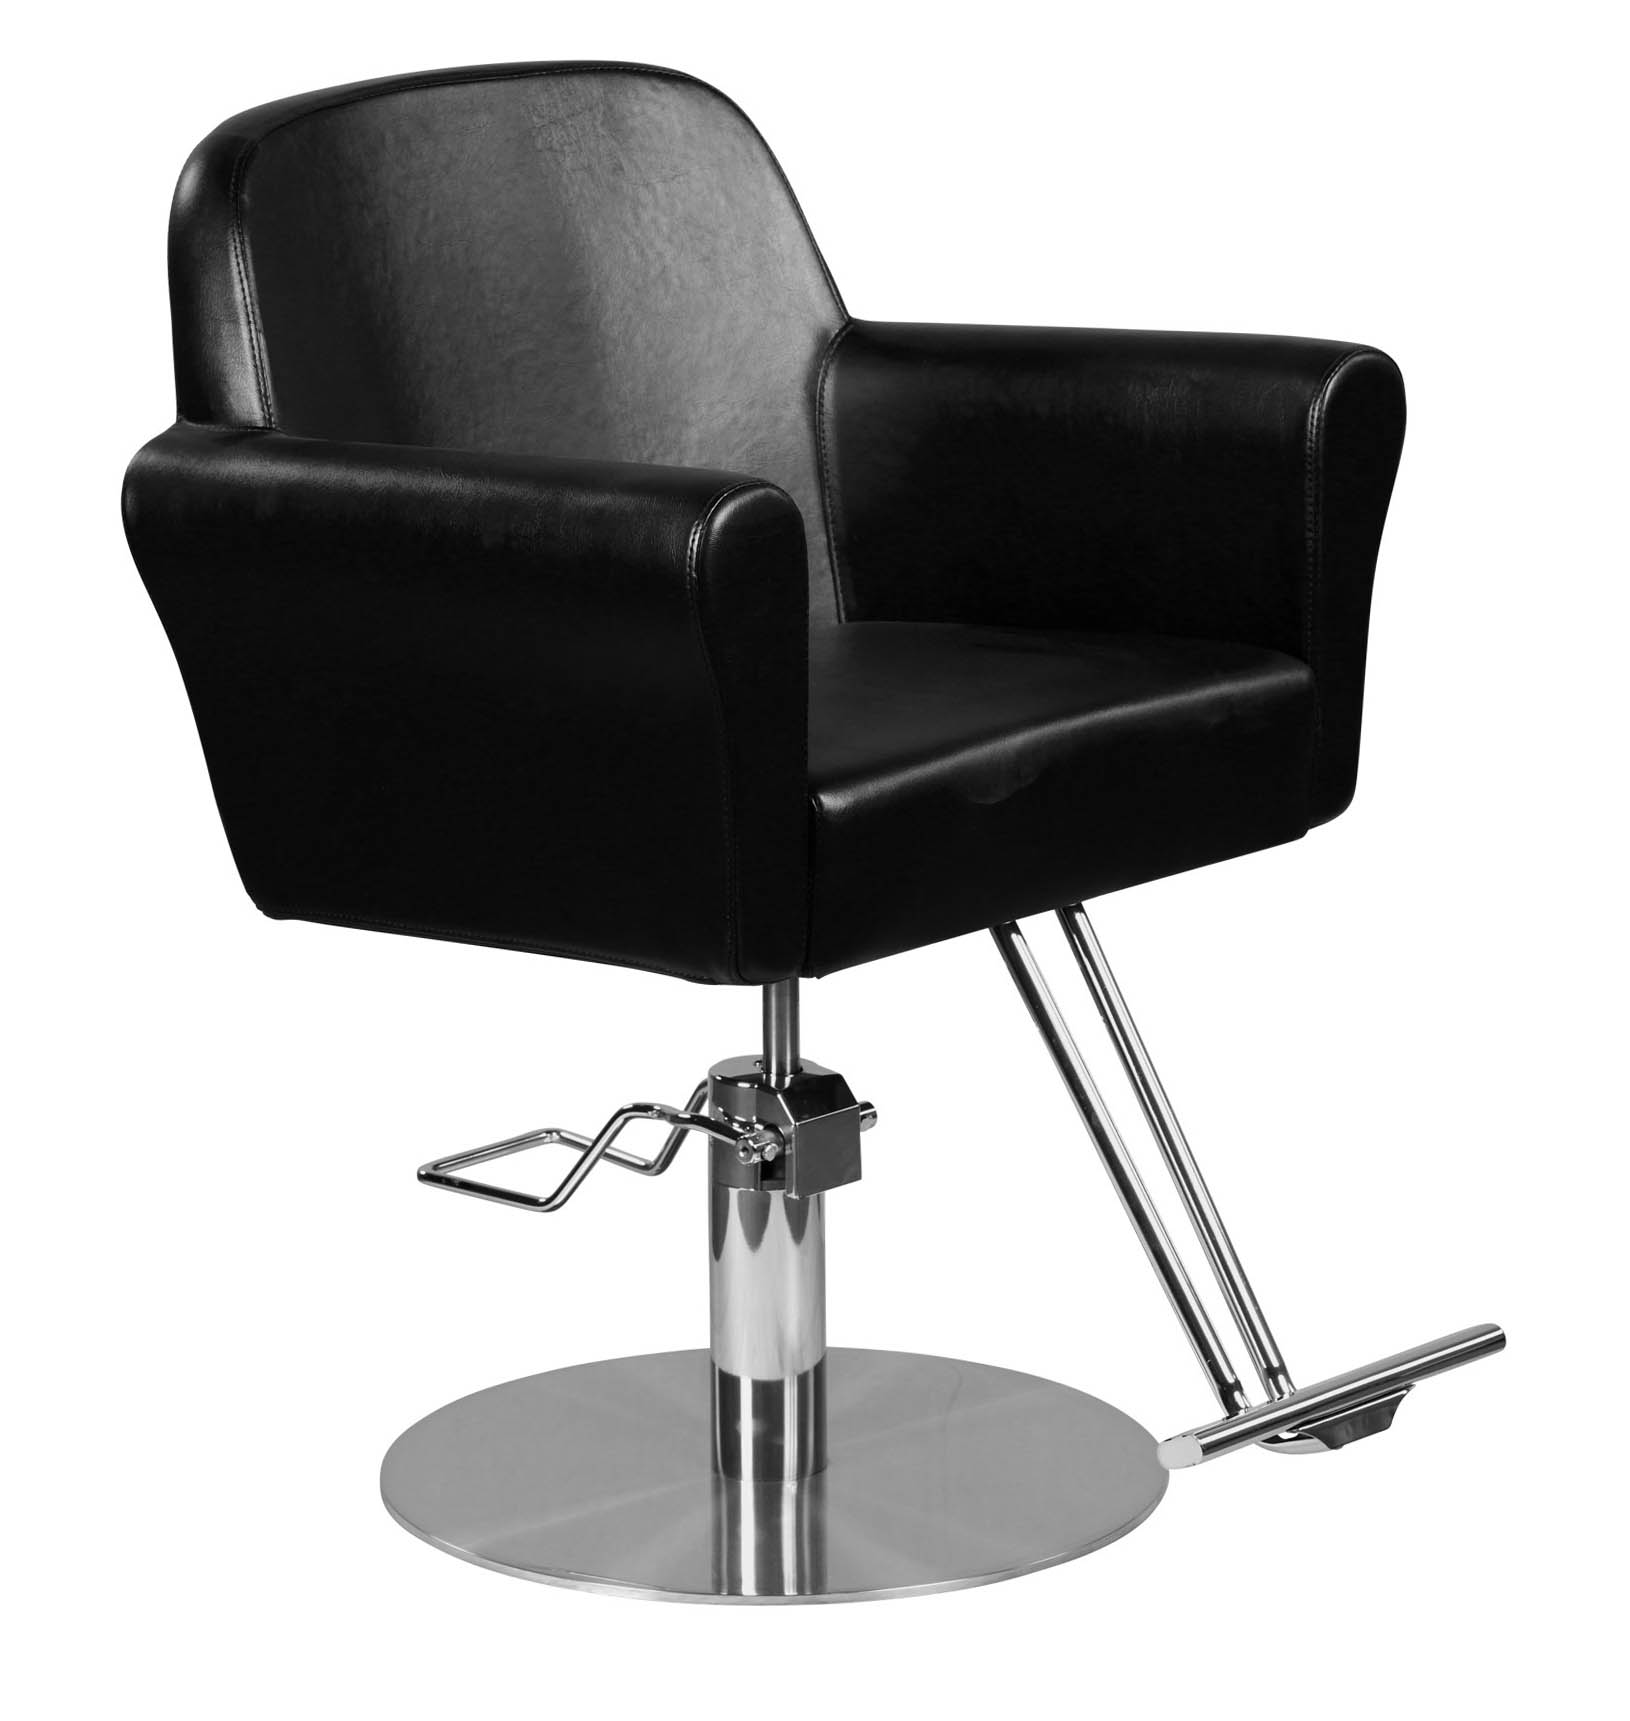 """Howard"" Modern Hair Salon Styling Chair With Round Base, Chrome T Bar Footrest by Icarus"